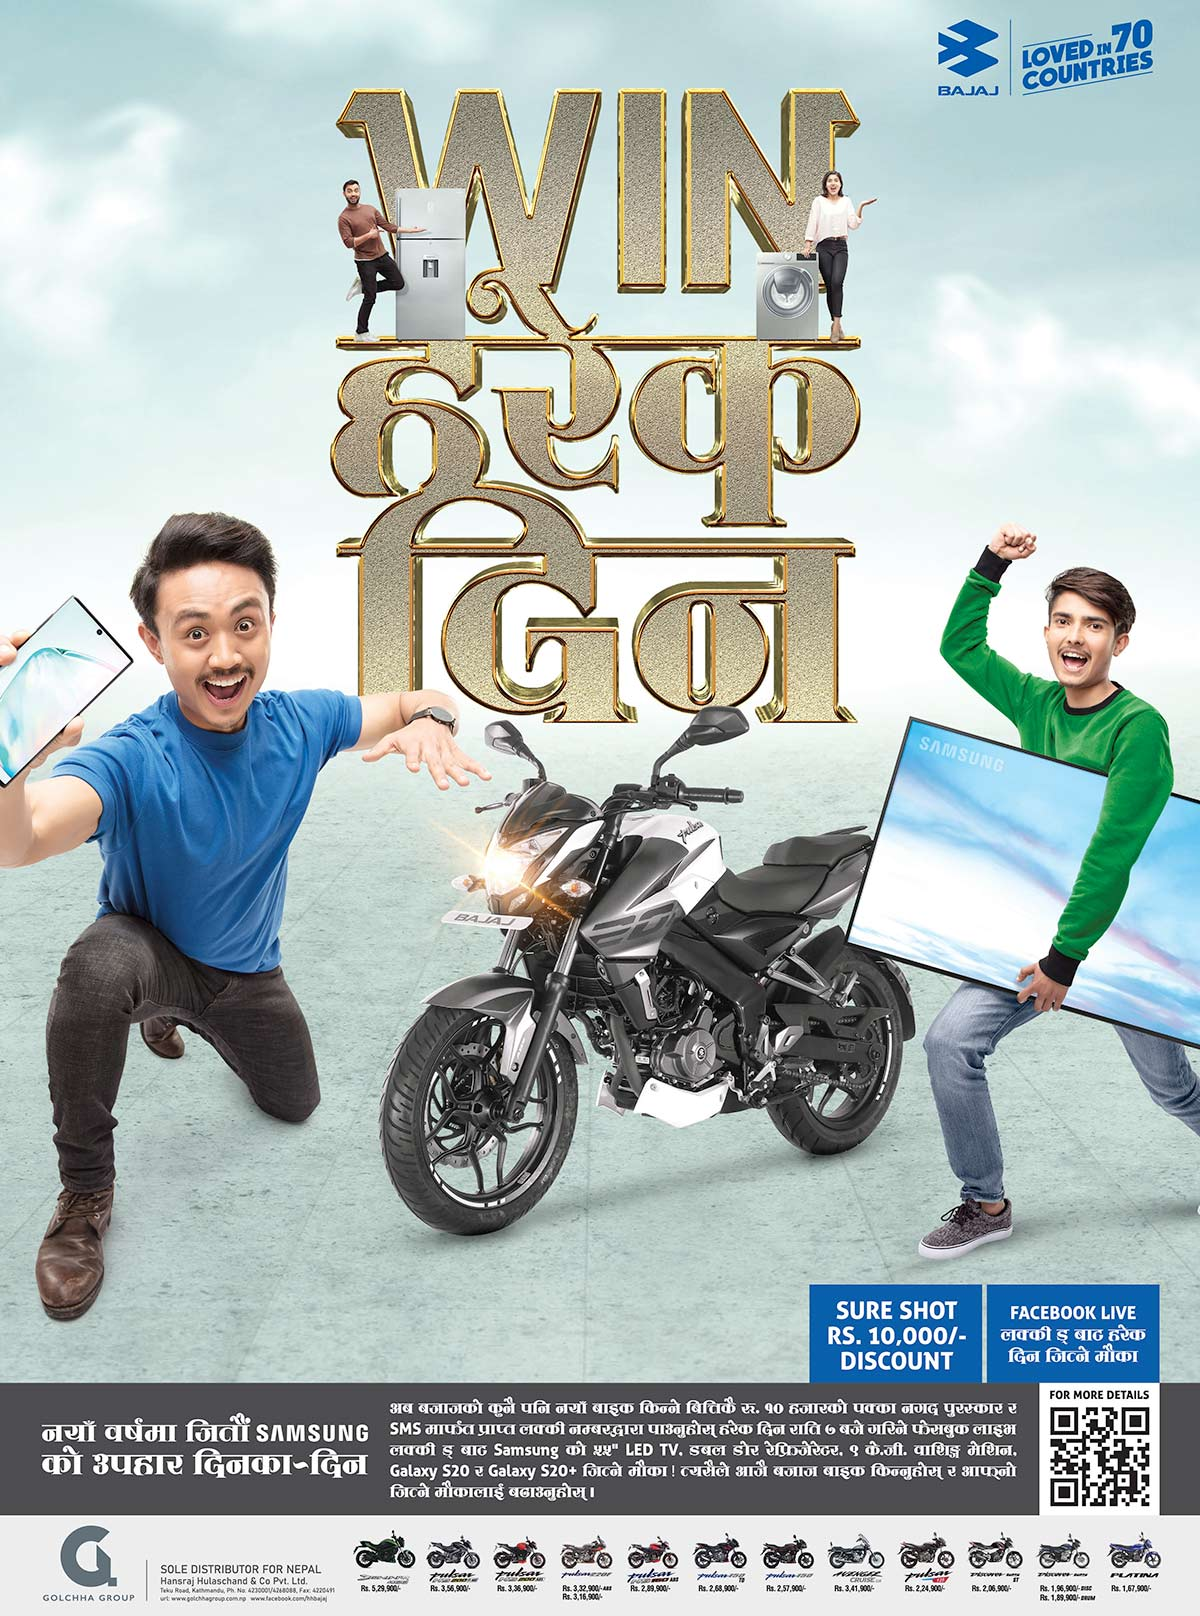 Nepali New Year Bajaj Offer Image1